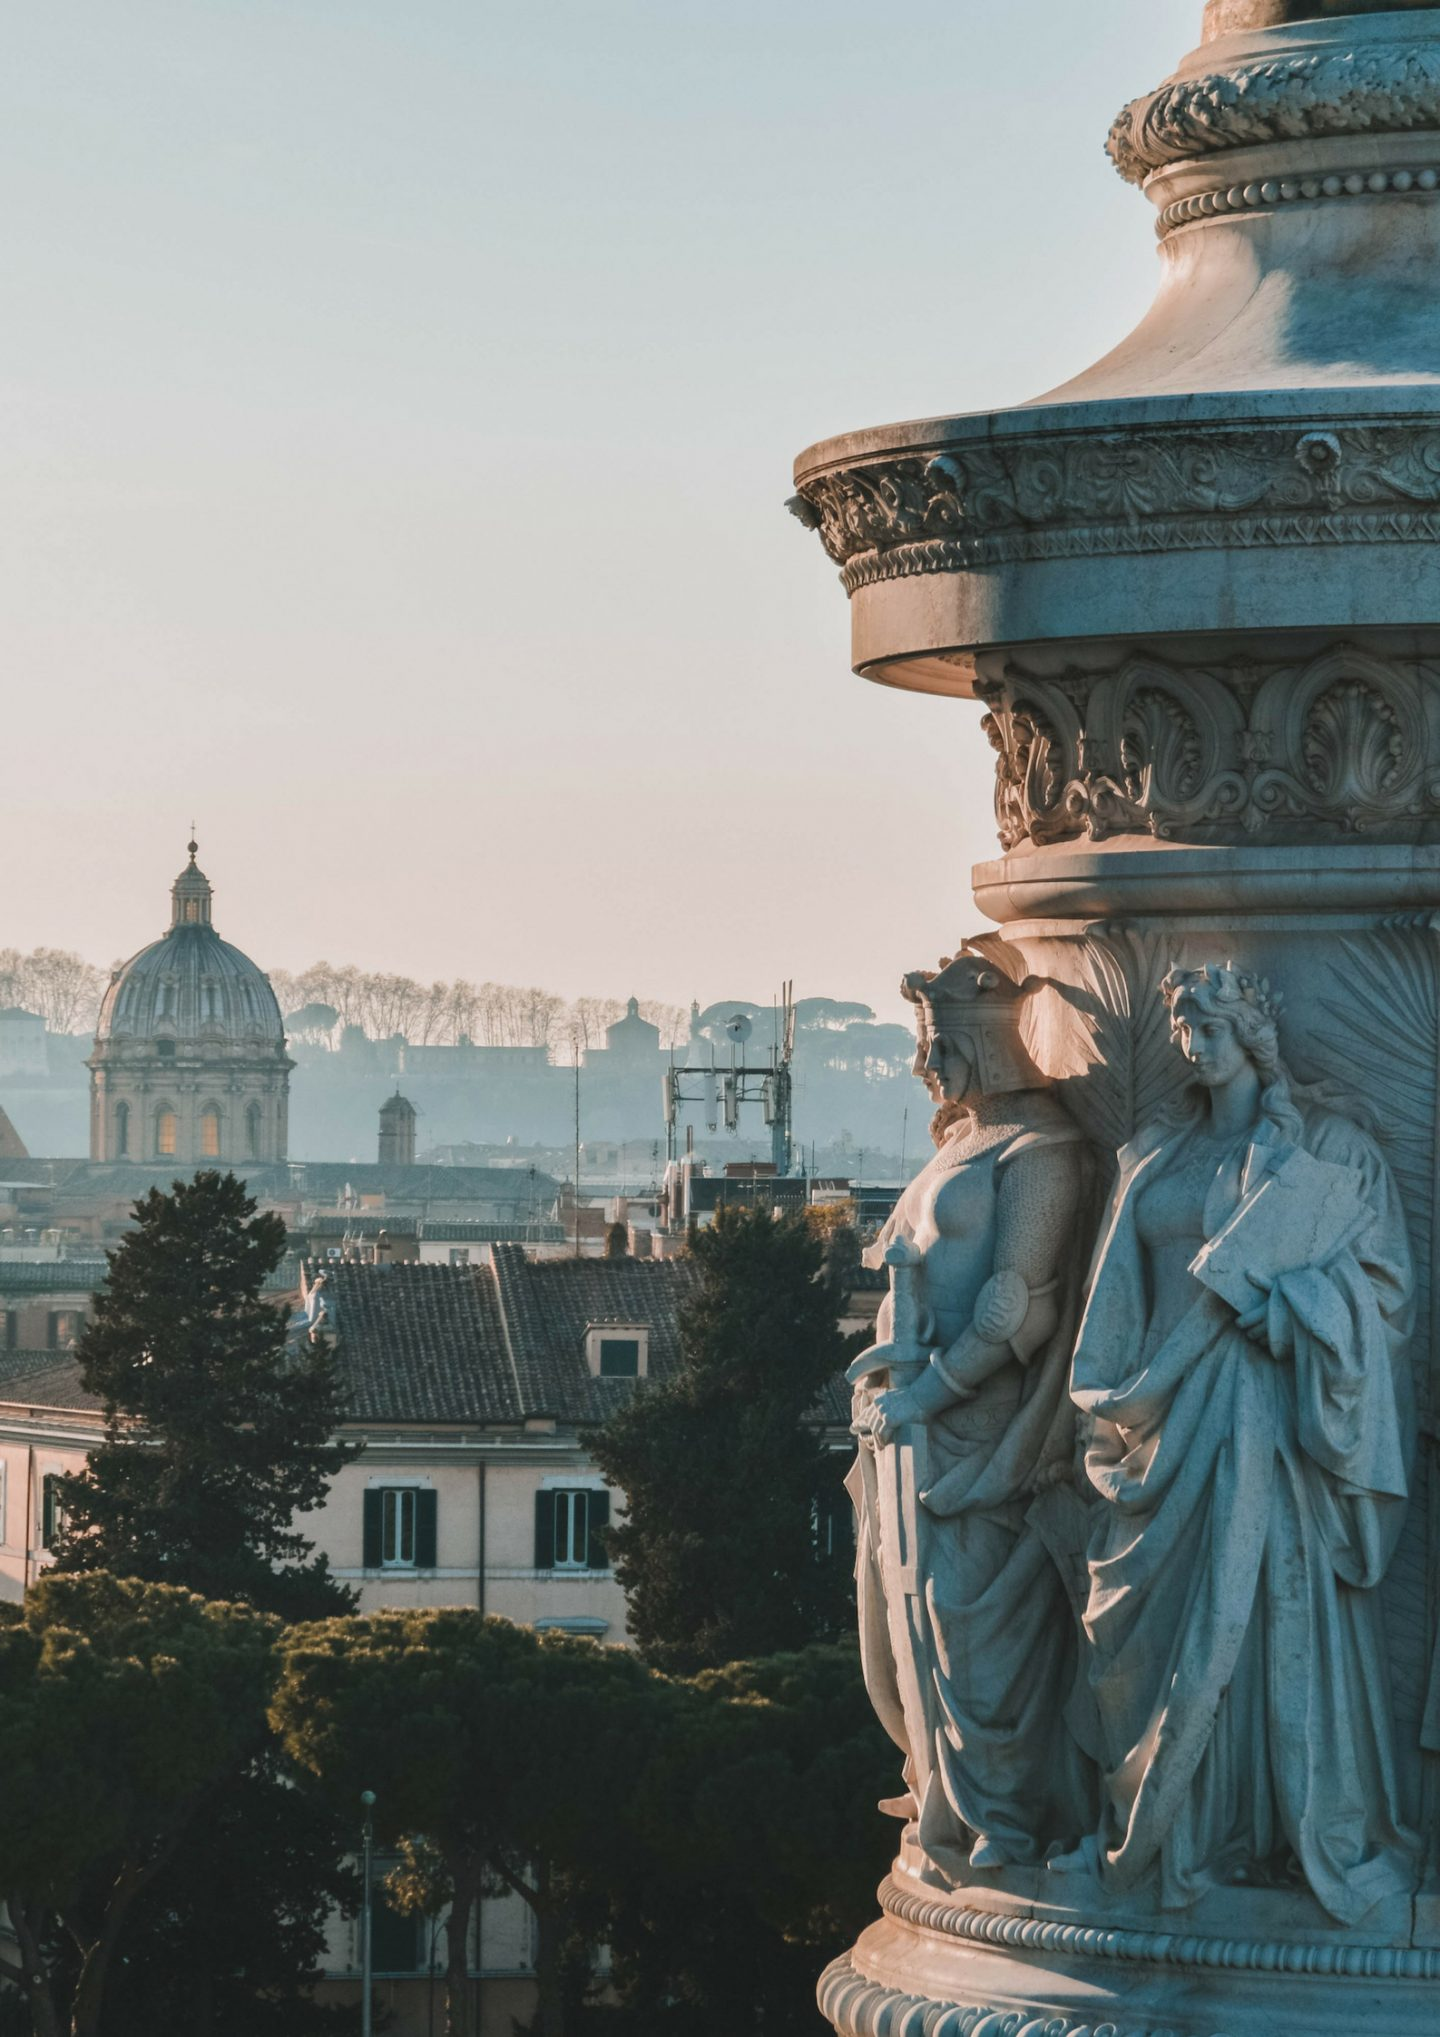 Rome travel guide | When visiting Rome for the first time